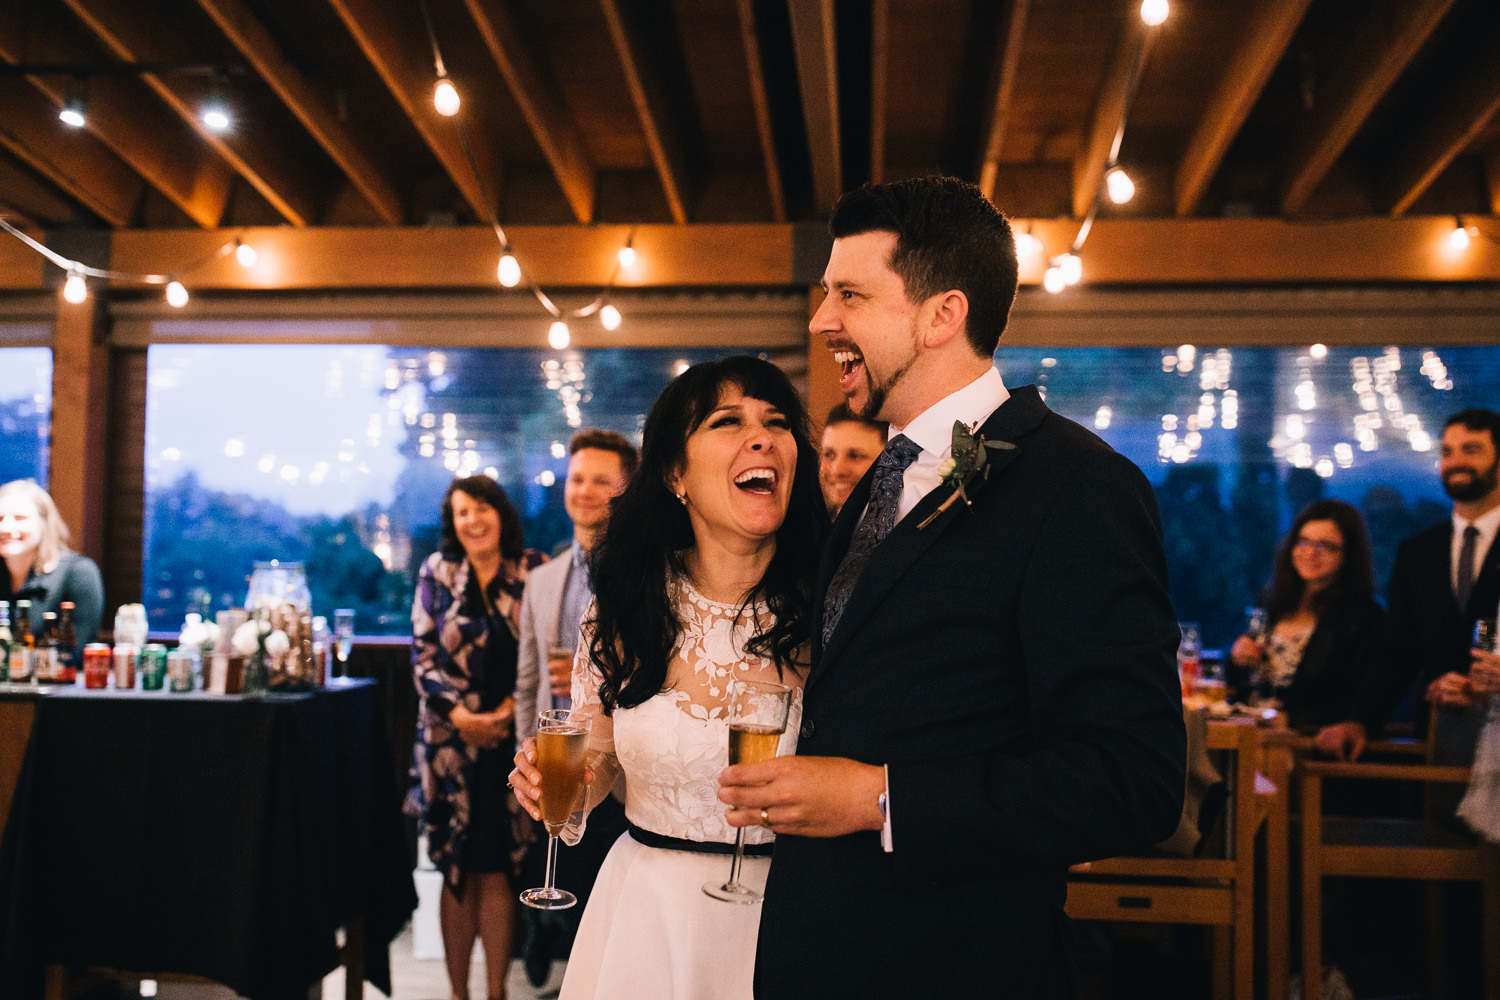 2019_05_ 182019.05.19 Lisa + Eddie South Bay Wedding Blog Photos Edited For Web 0134.jpg